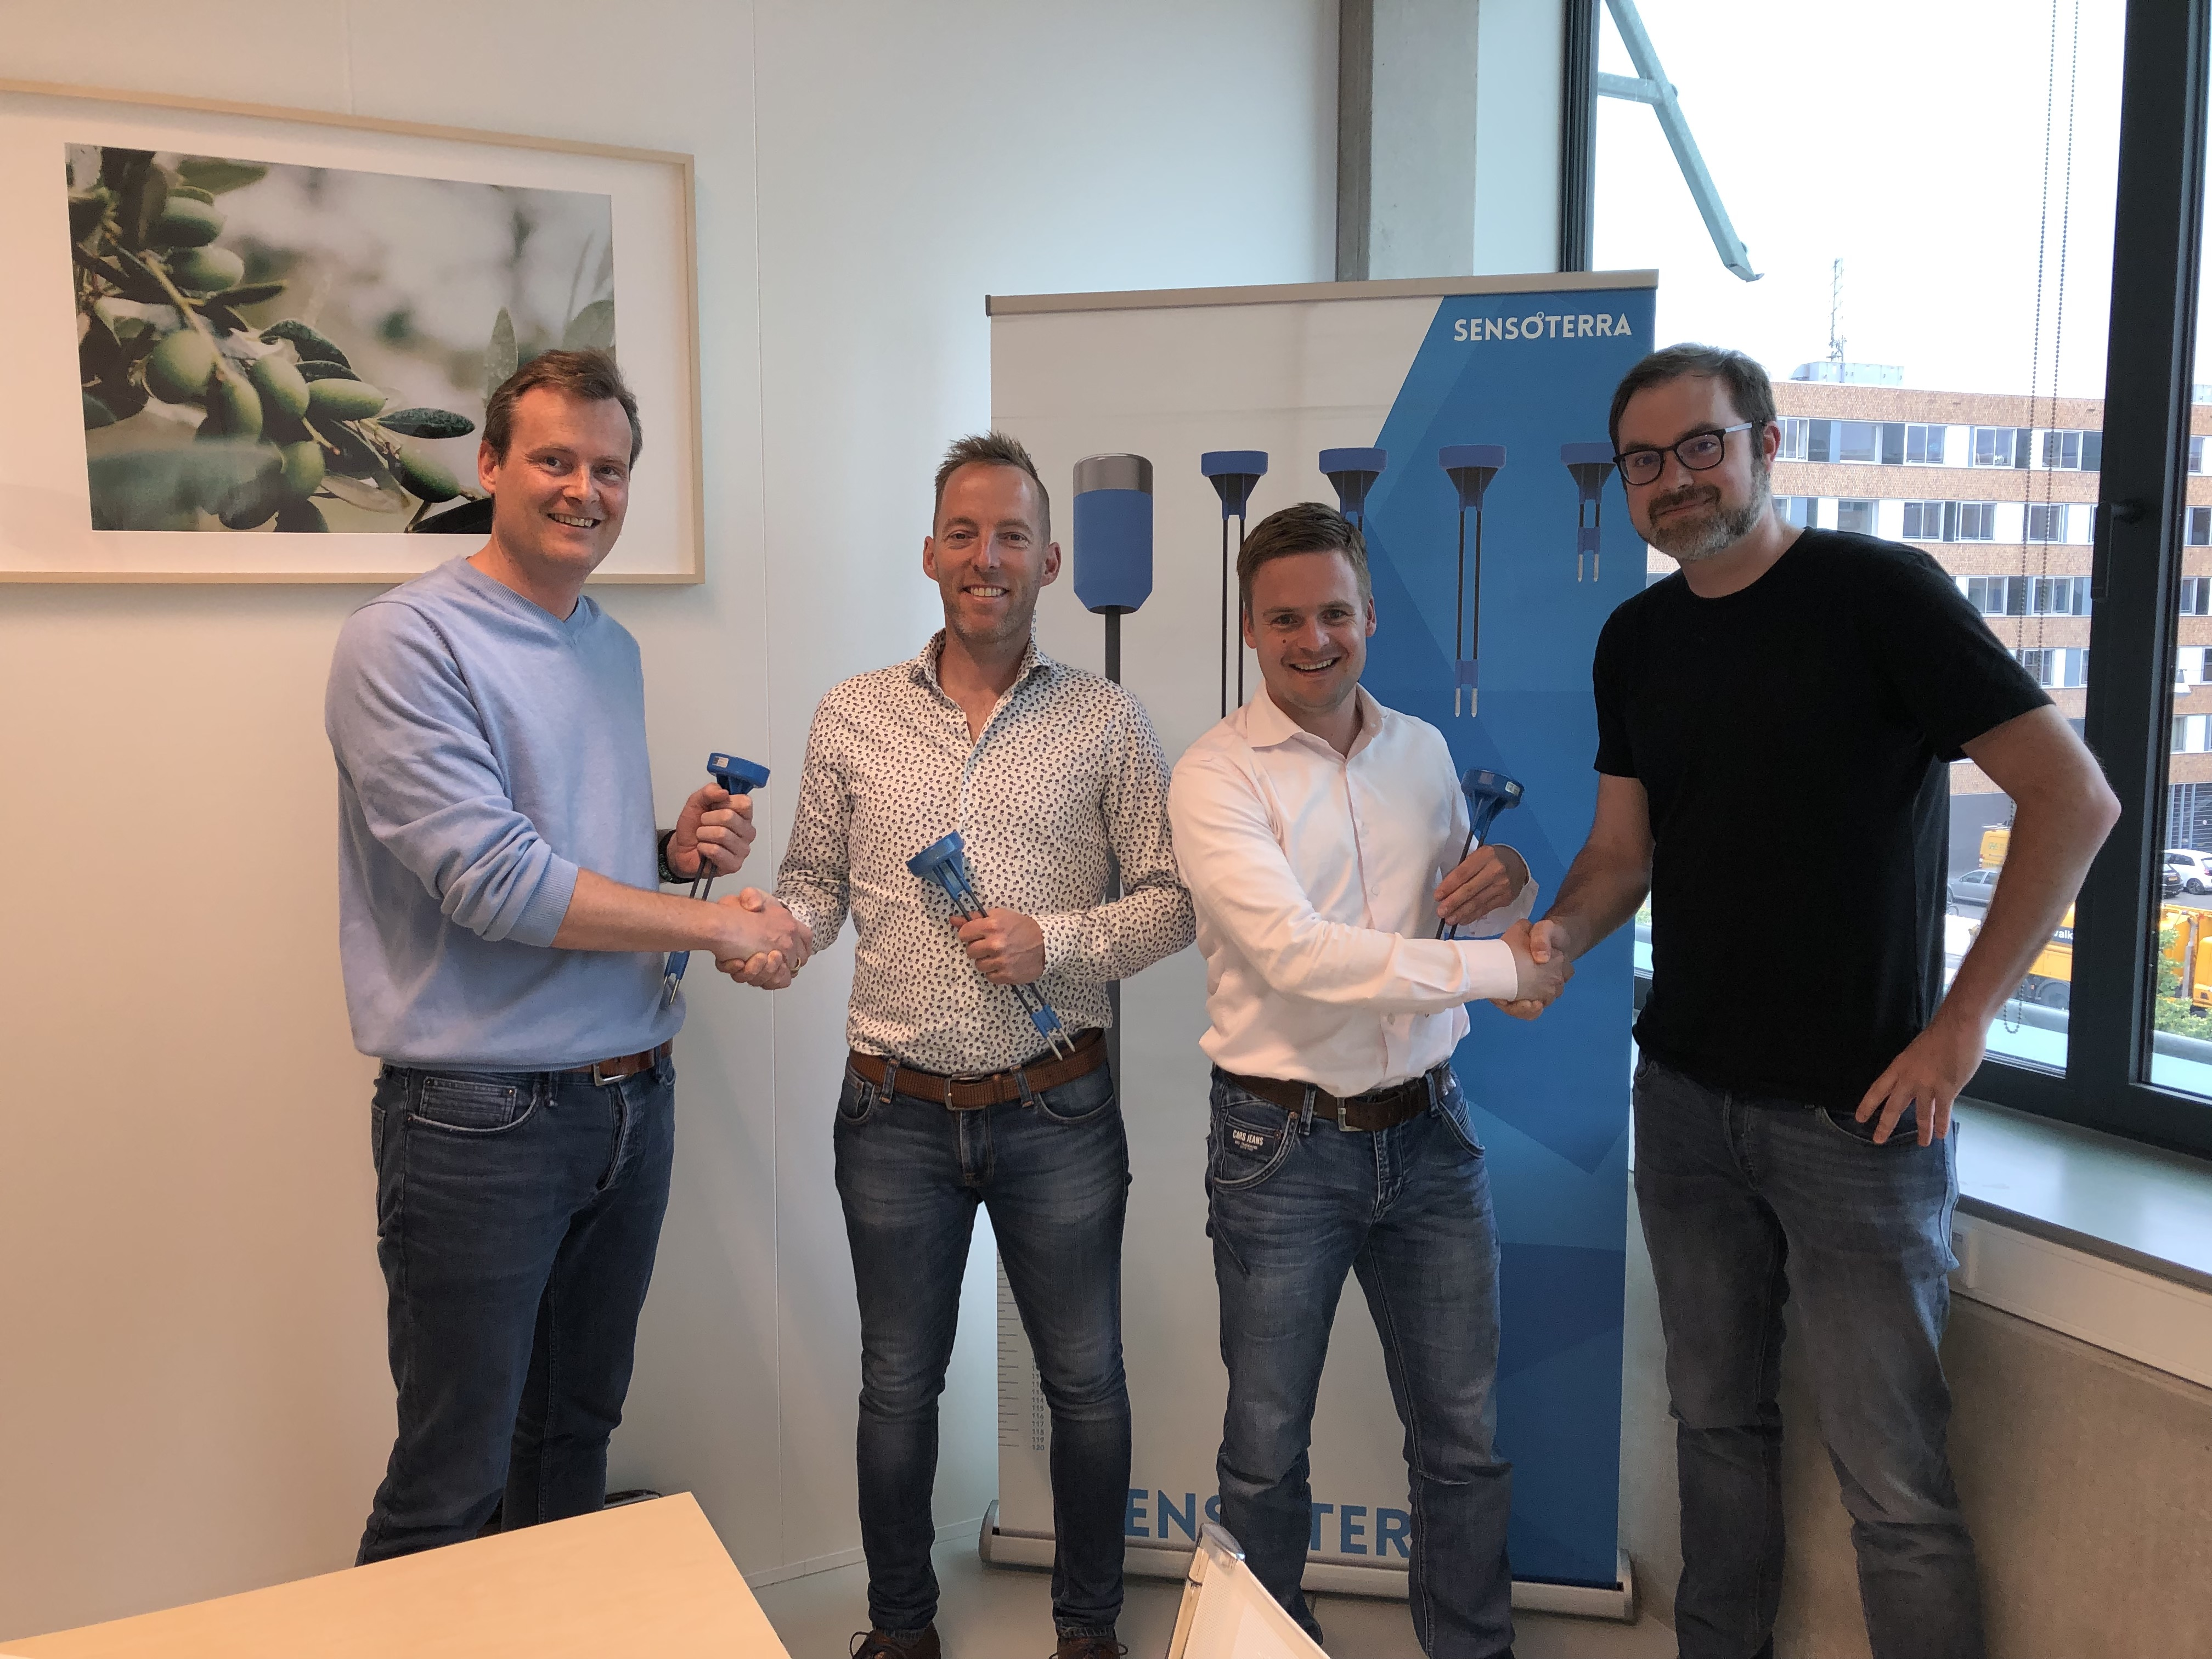 Sensoterra partners with JoinData to bring data-driven irrigation decisions to Dutch growers